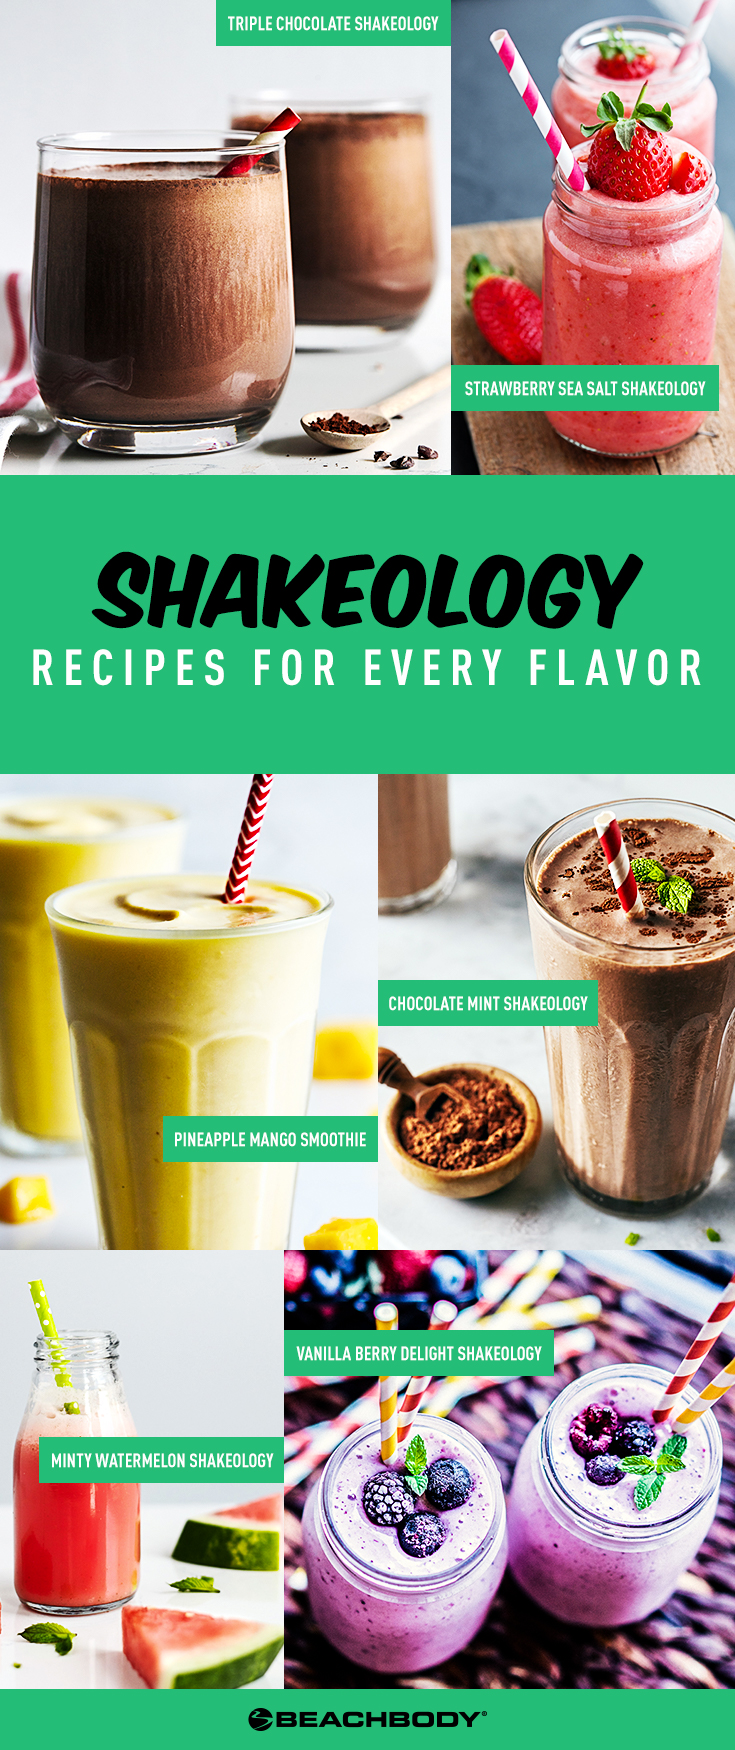 Shakeology Recipes for Every Shakeology Flavor